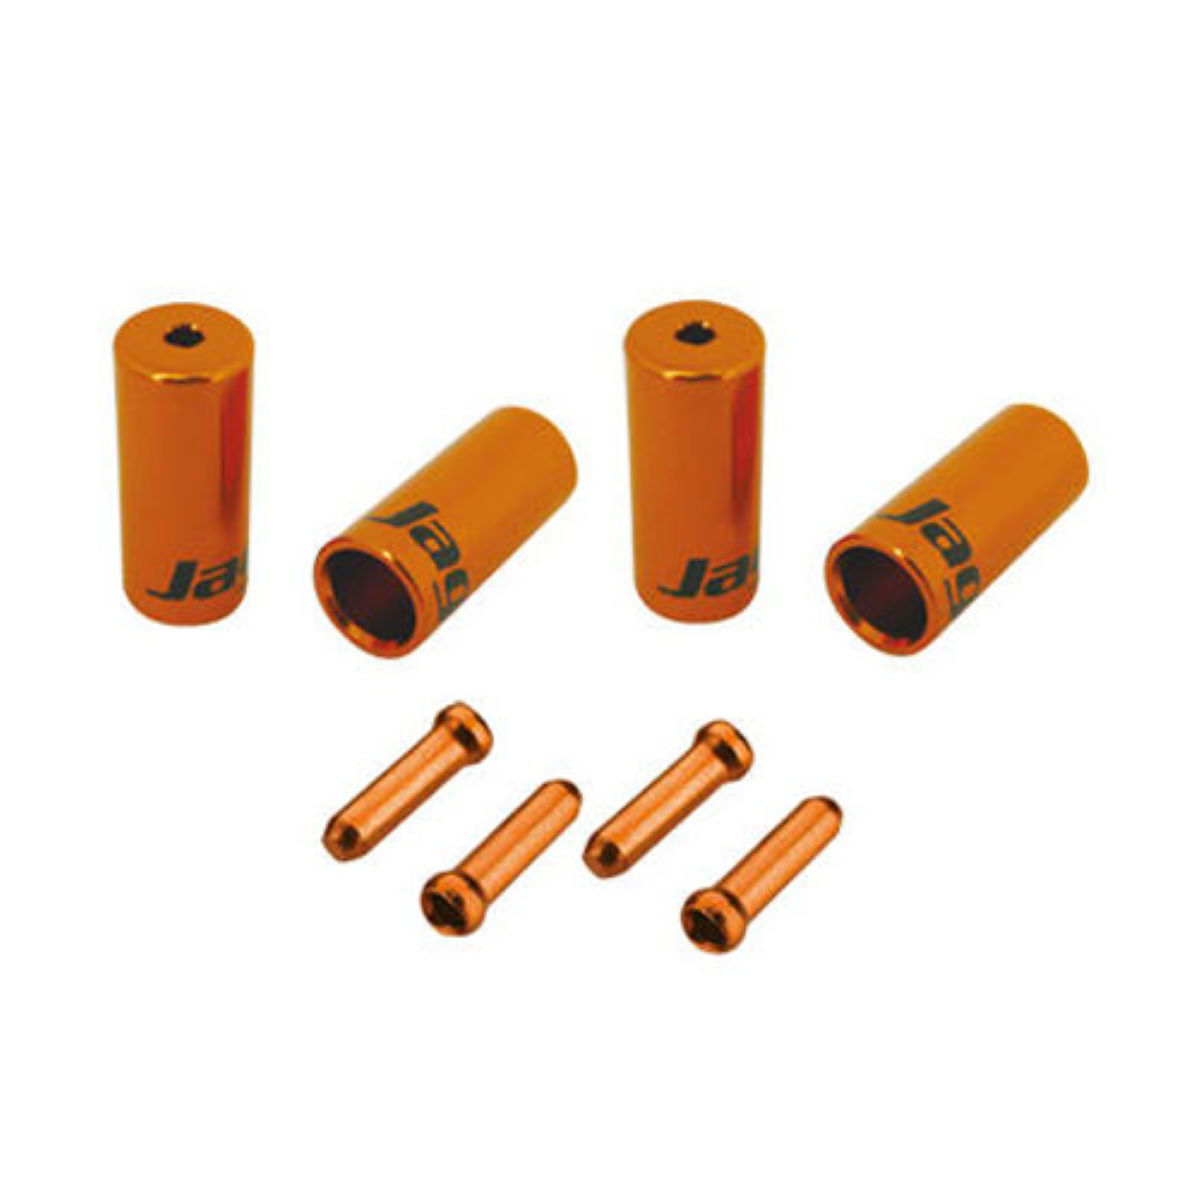 Kits simples Jagwire d'embouts de vélo - One Size Orange